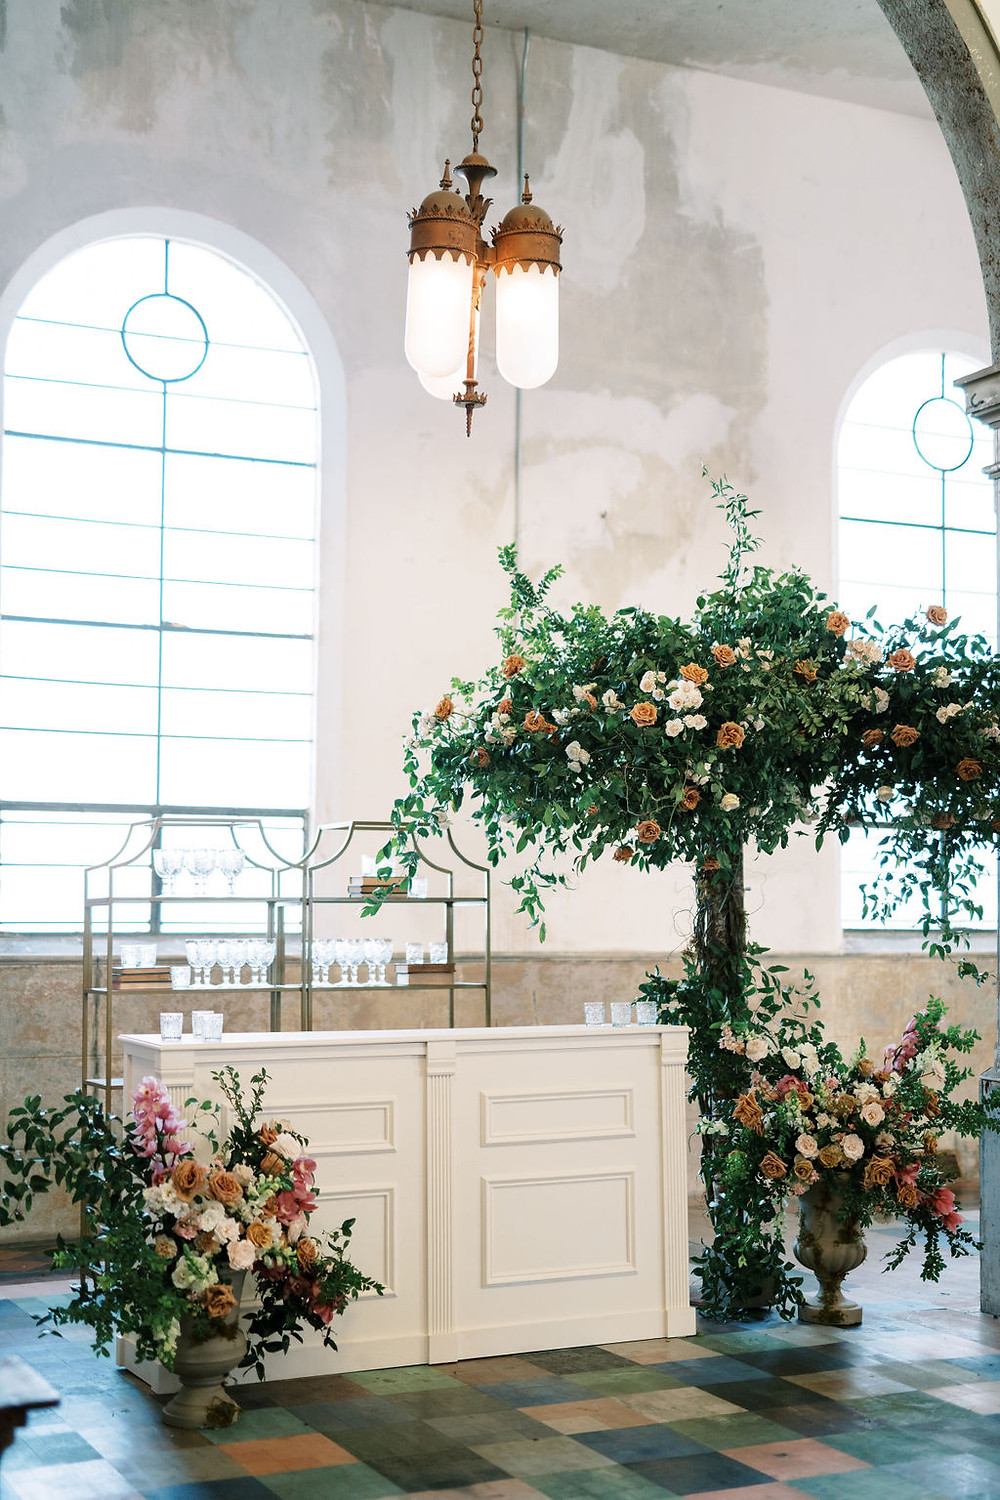 Bridgerton Inspired Wedding at the Marigny Opera House in New Orleans with Decor, Lounge Spaces, and Vintage Furniture by Lovegood Rentals Featuring Antique Designed Bar, Barbacks w. Glass Goblets, Vintage Books and Overgrown Florals